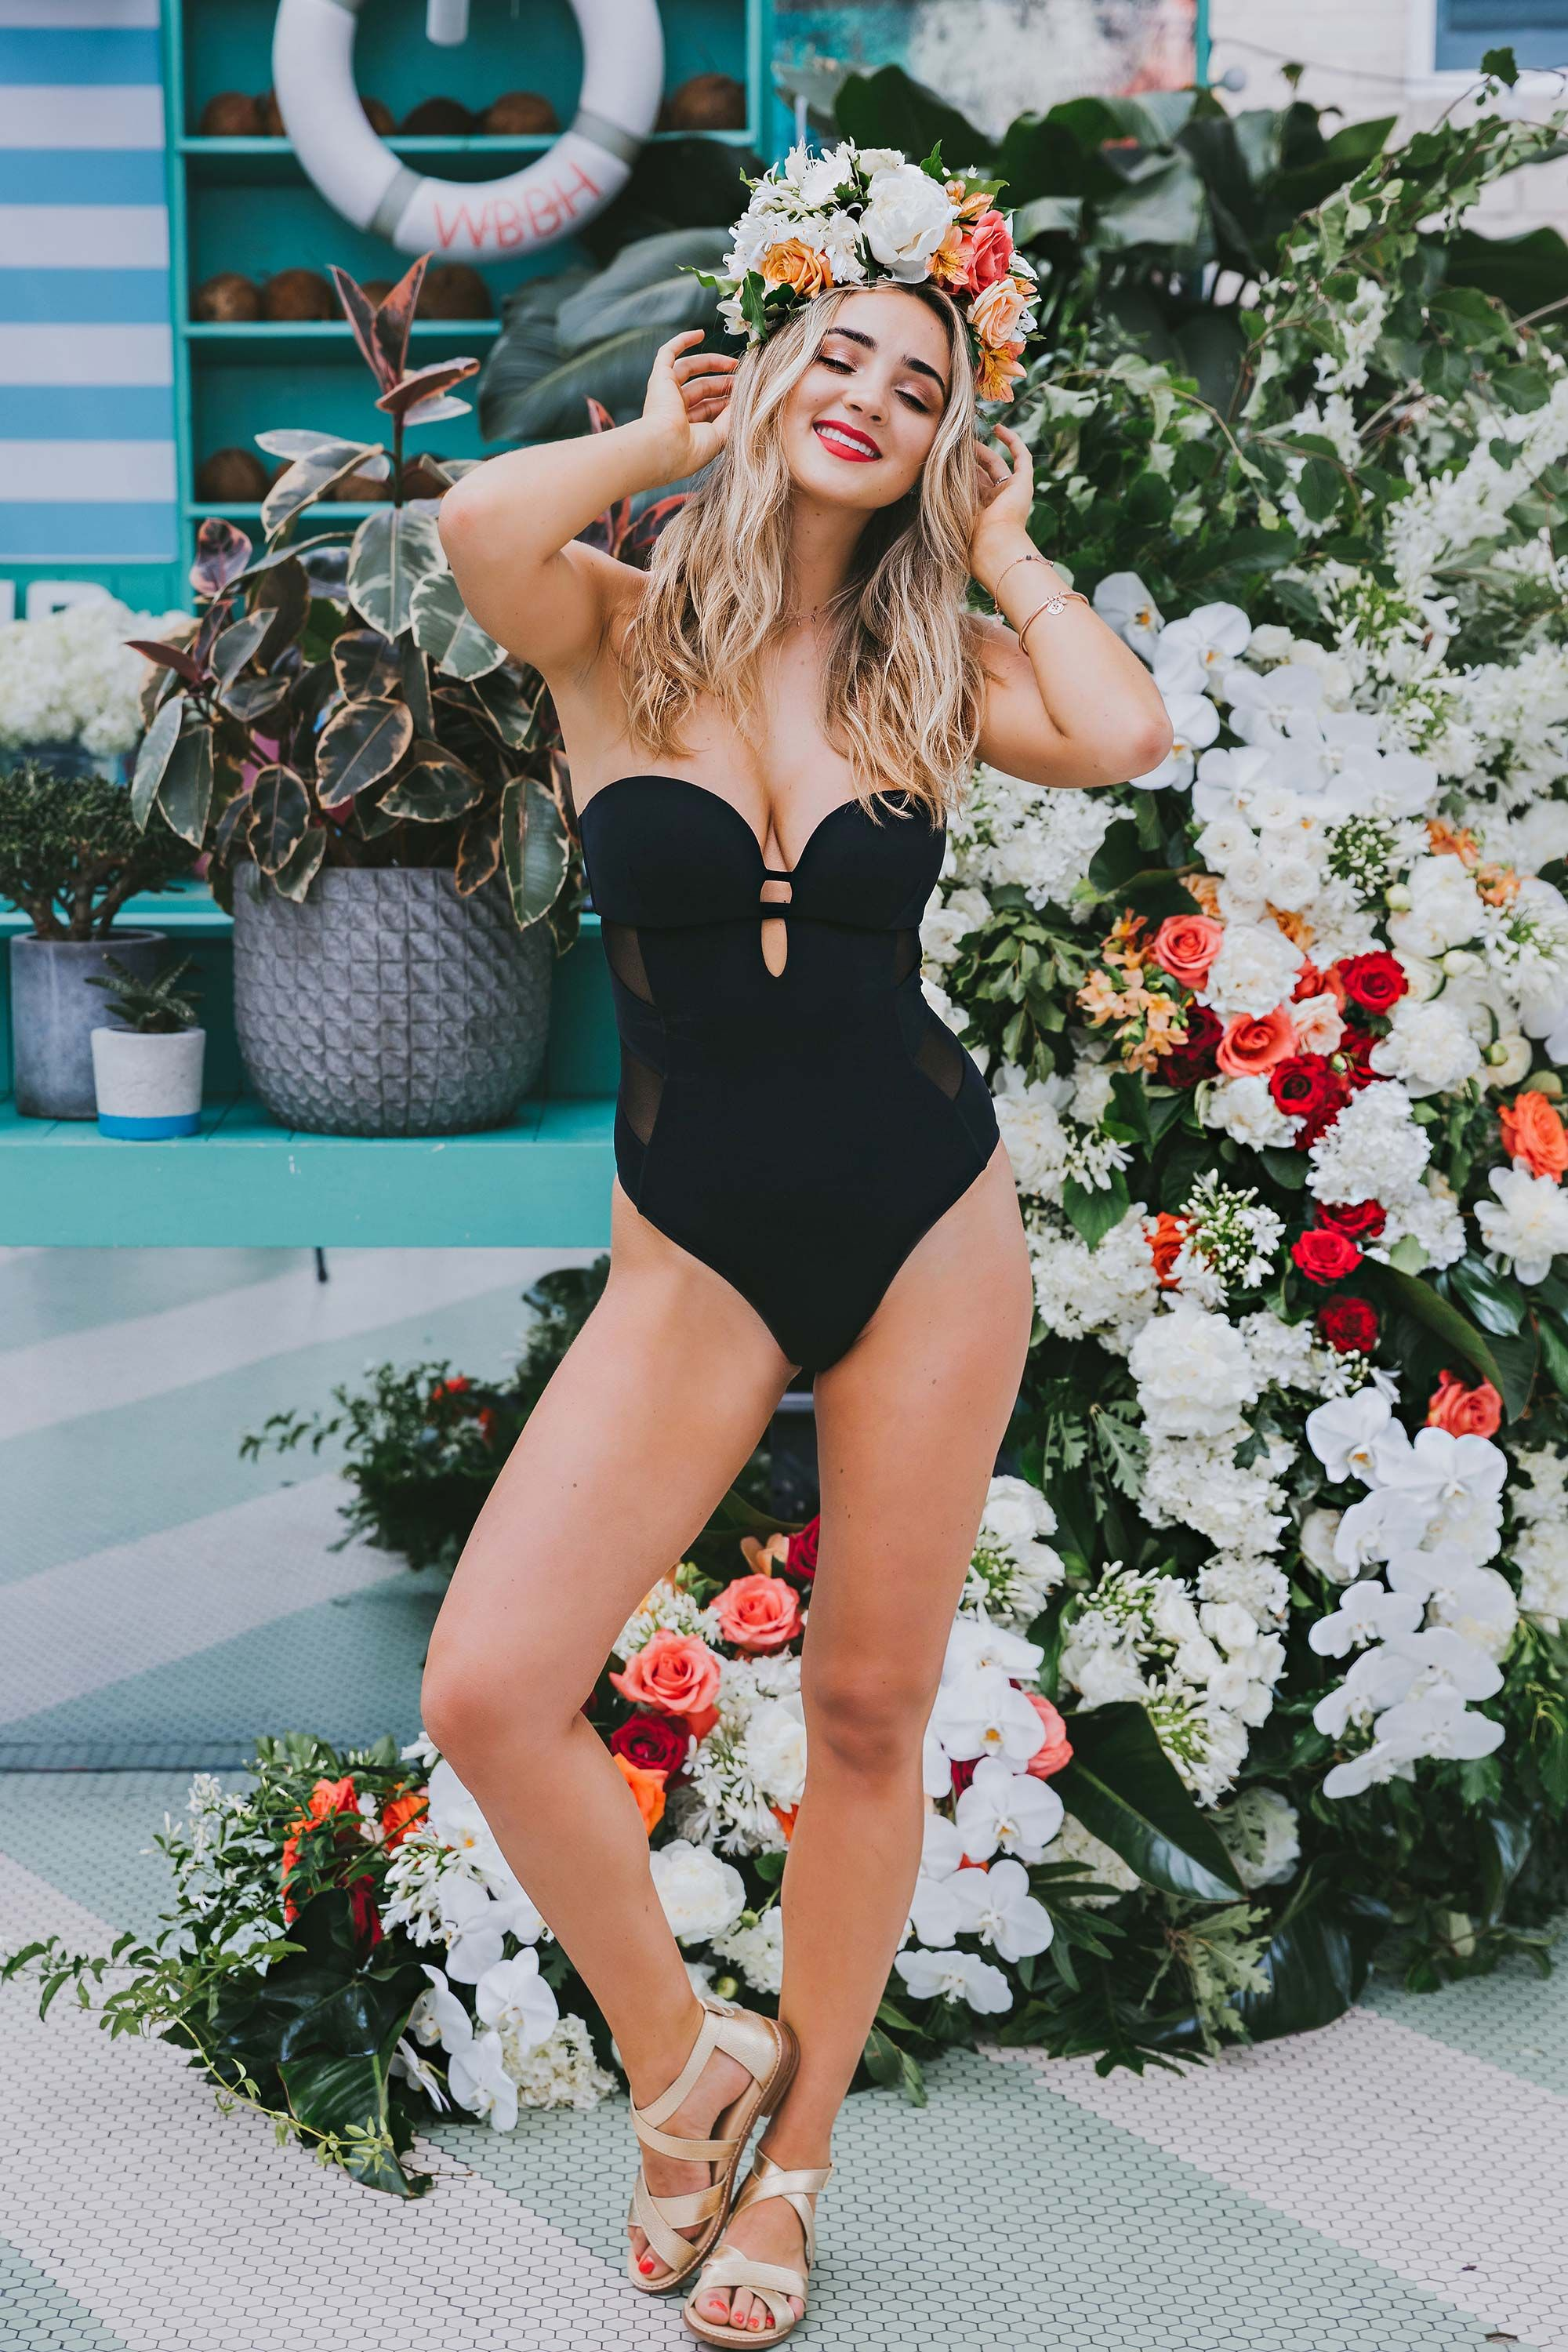 Bared_Footwear_Engagement_Party_With_Lenzo_Womens_Gold_Leather_Robin_Sandals_Black_Swim_Suit_Sydney